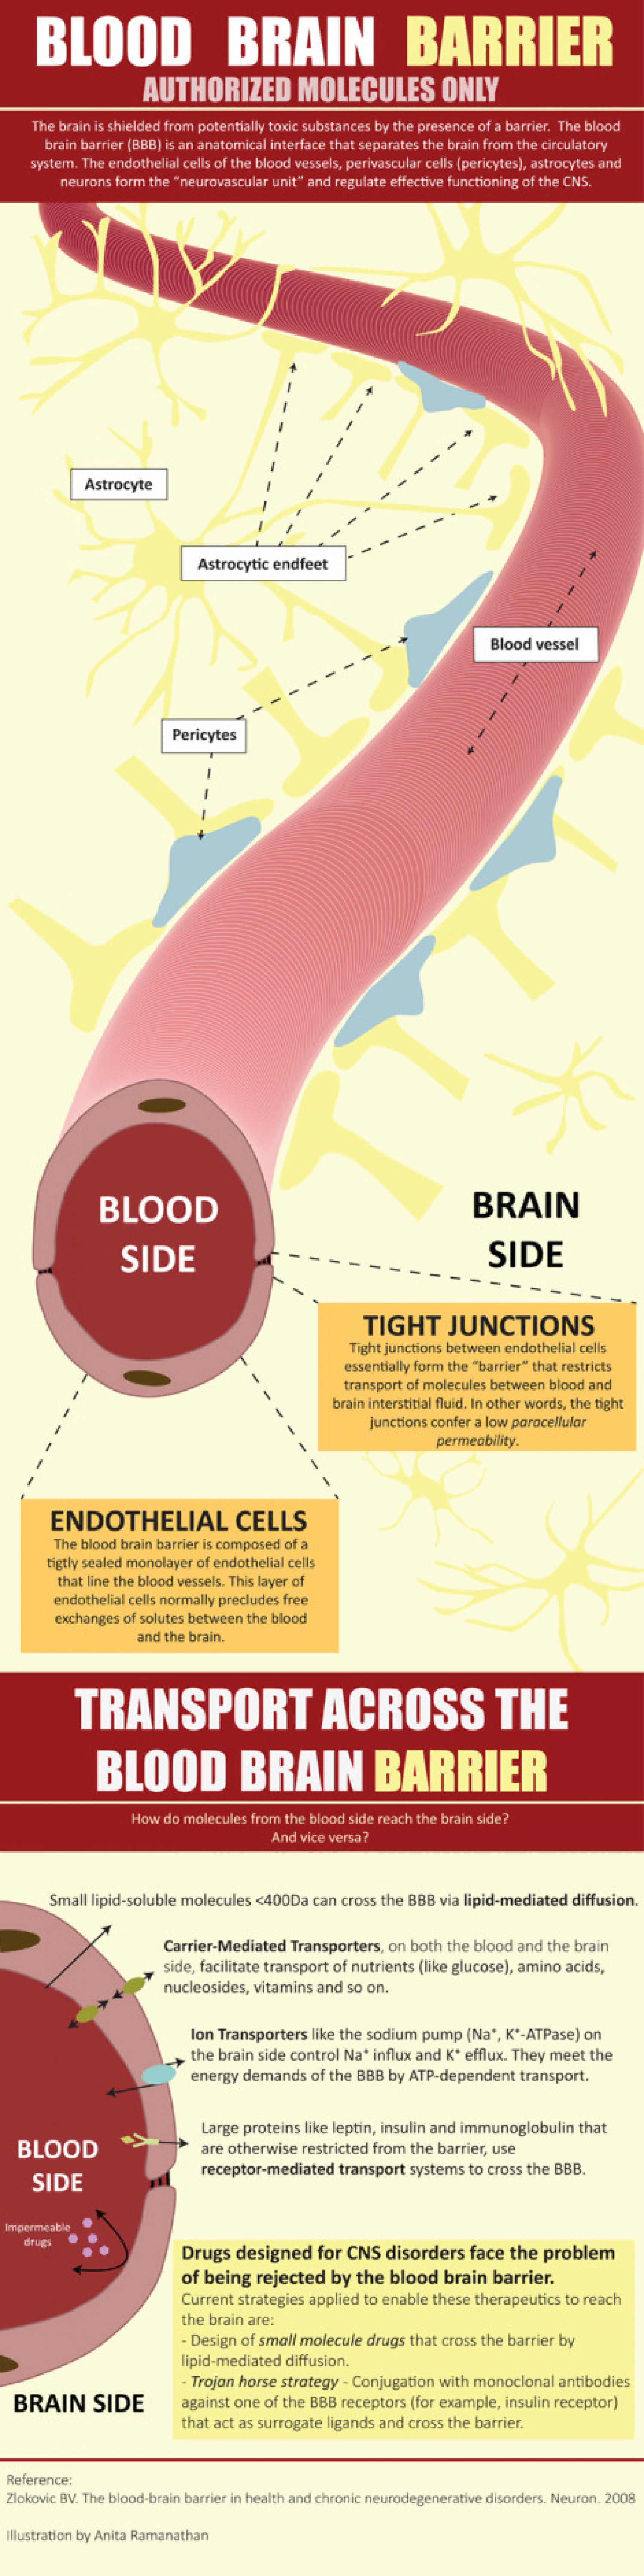 Blood Brain Barrier Infographic